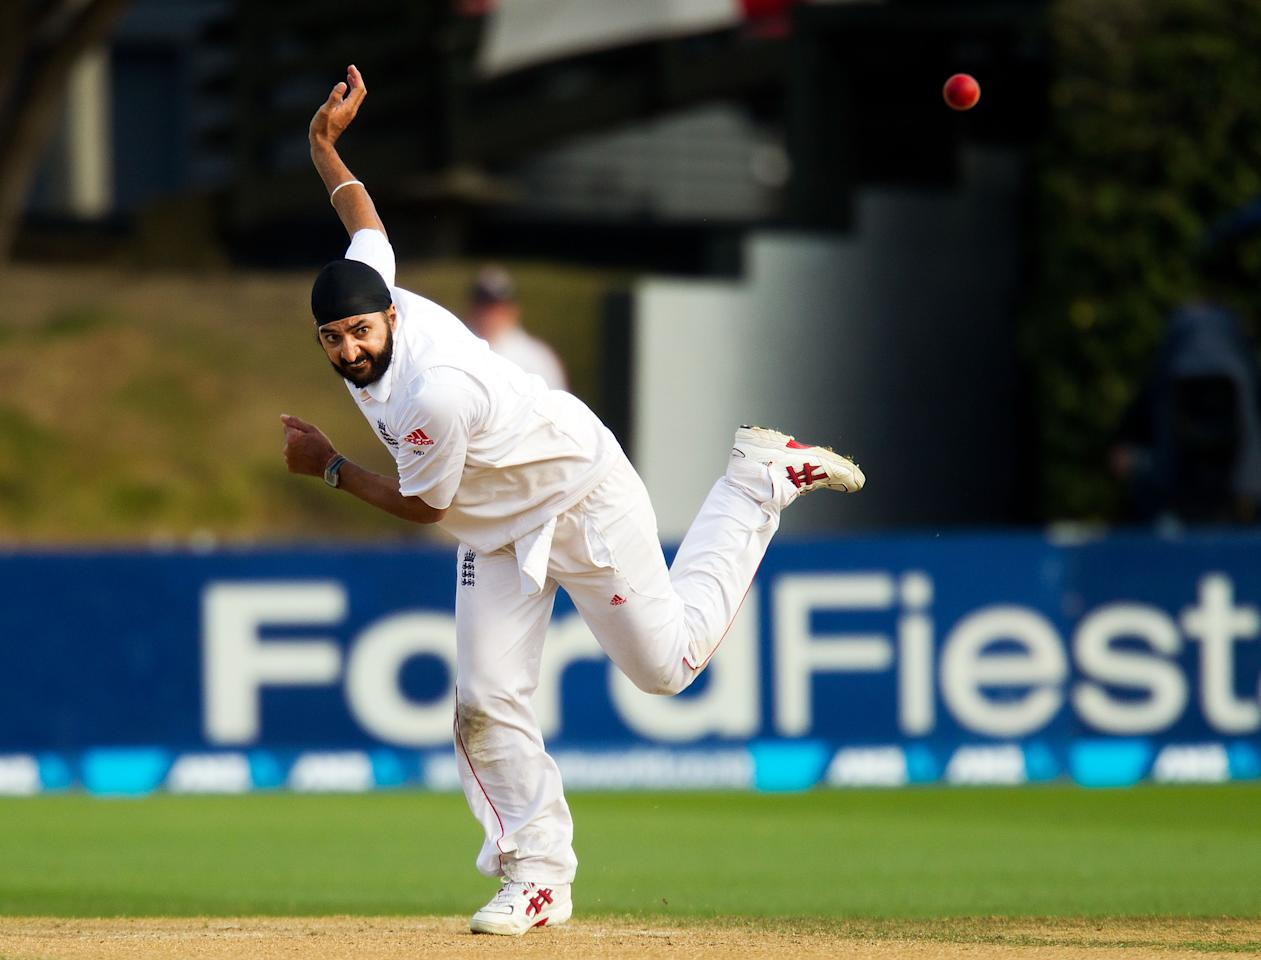 England's Monty Panesar bowls during day four of the international cricket Test match between New Zealand and England played at the Basin Reserve in Wellington on March 17, 2013.   AFP PHOTO / Marty MELVILLE        (Photo credit should read Marty Melville/AFP/Getty Images)